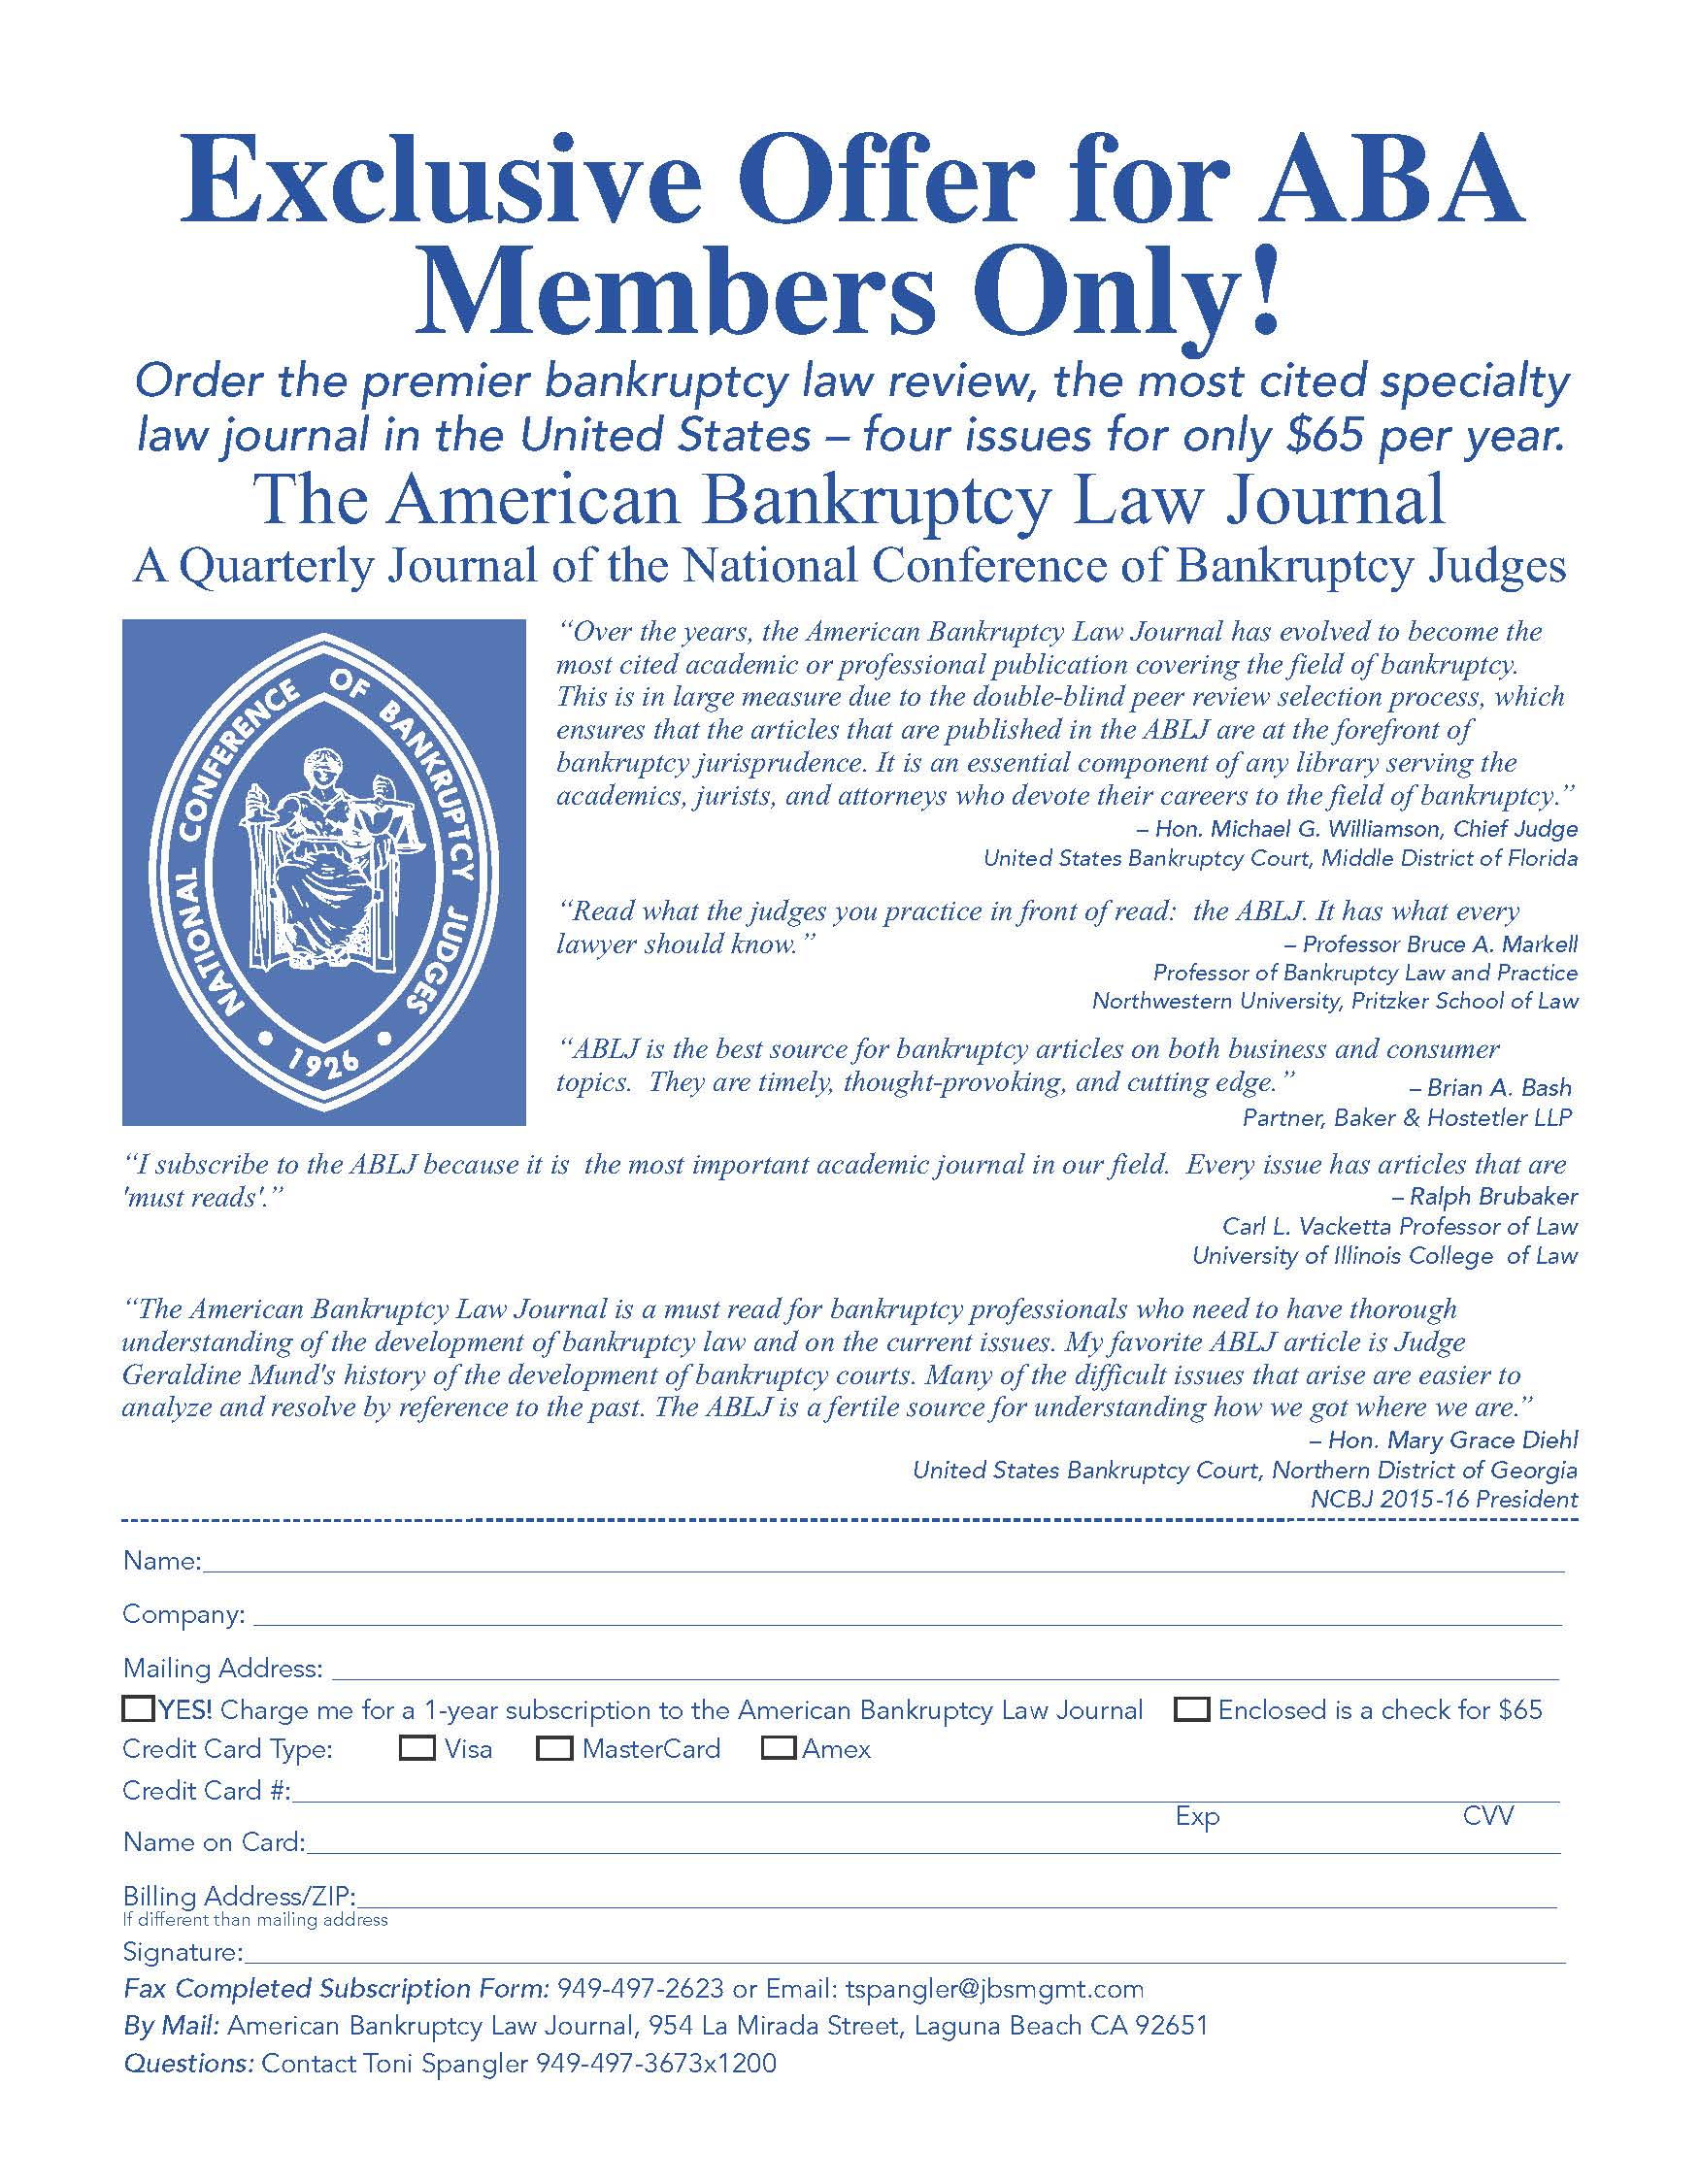 BLS Members Receive Special Offer for The American Bankruptcy Law ...